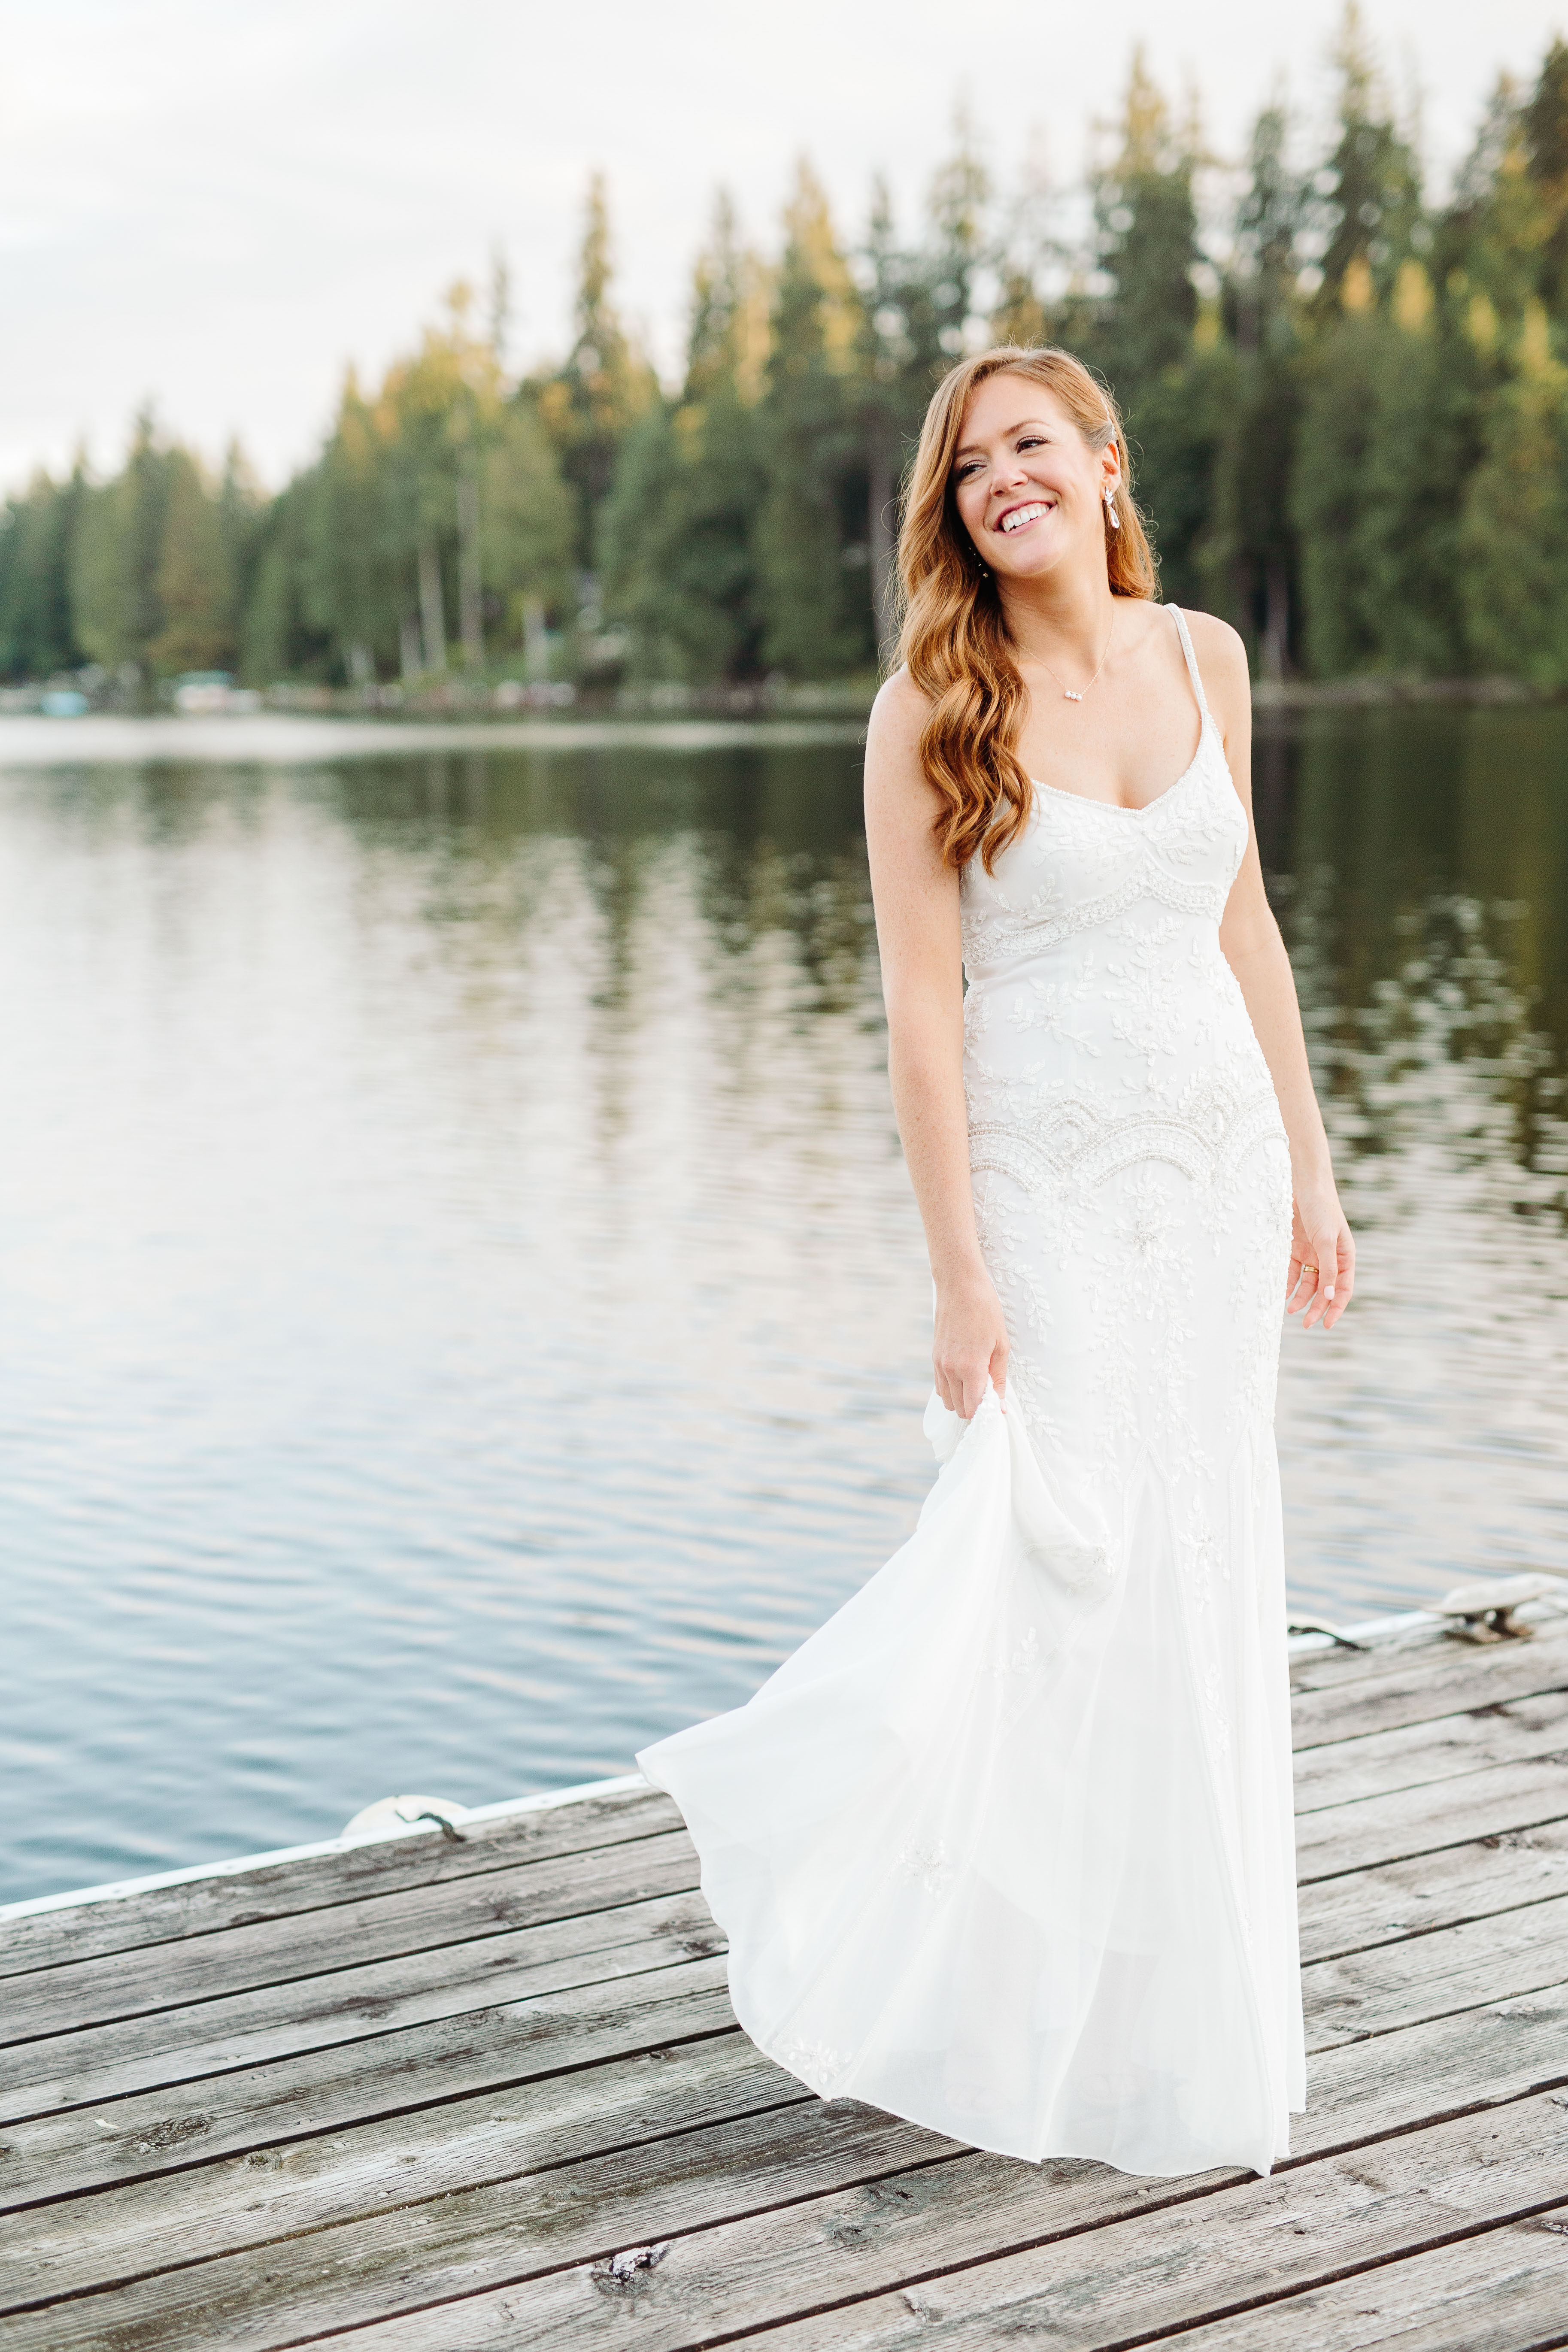 Bride at NW lake wearing spaghetti strap lace dress - photo by Cameron Zegers Photography